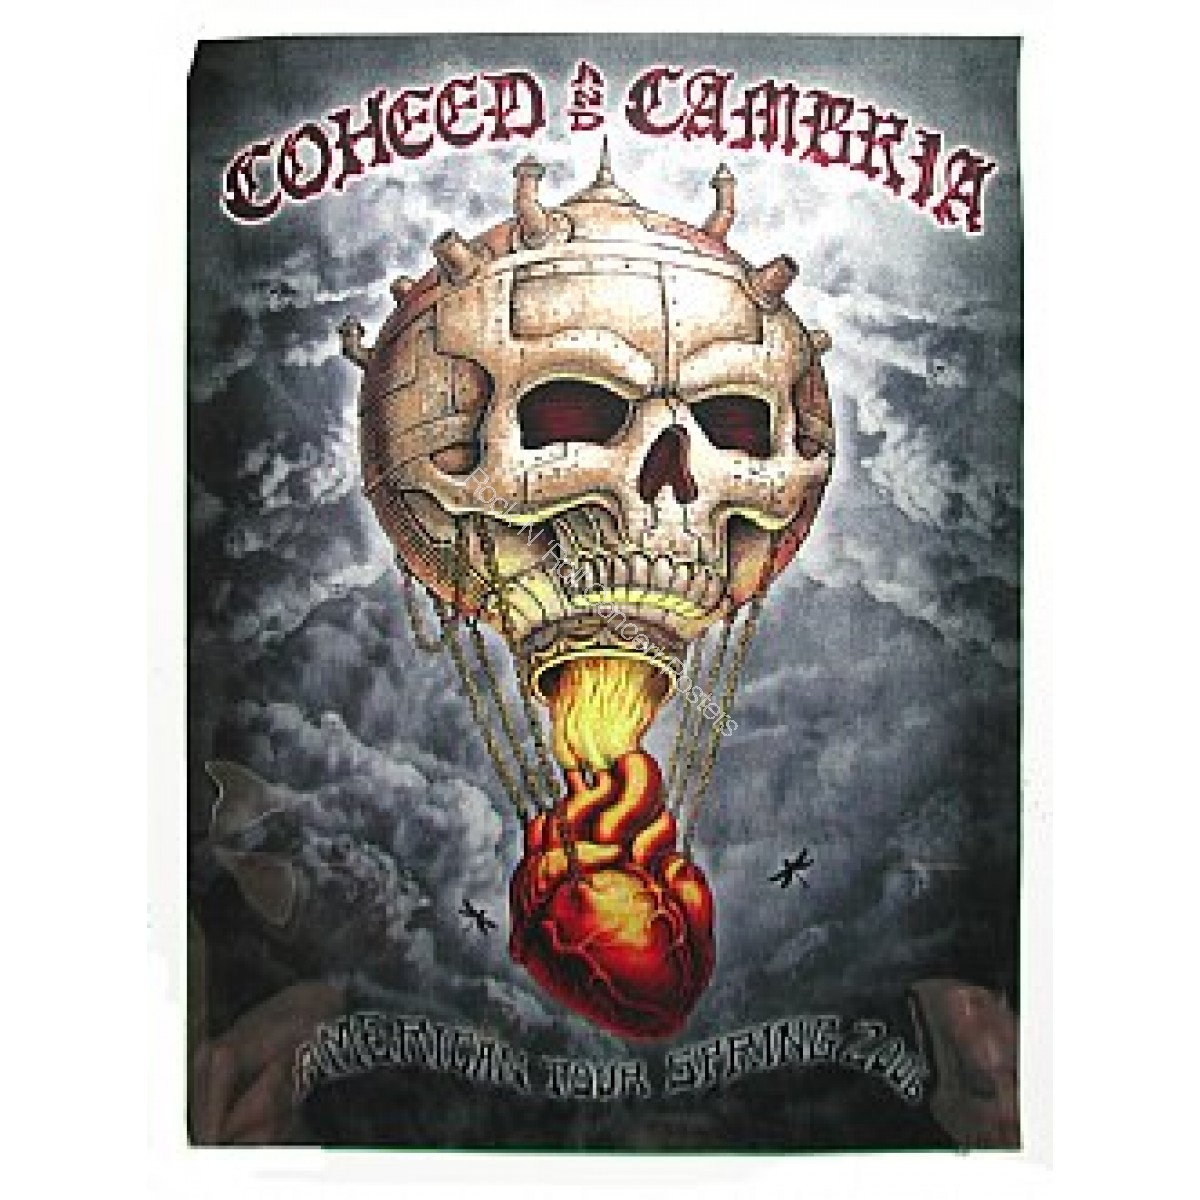 Coheed & Cambria  Spring Tour 2006 By Emek